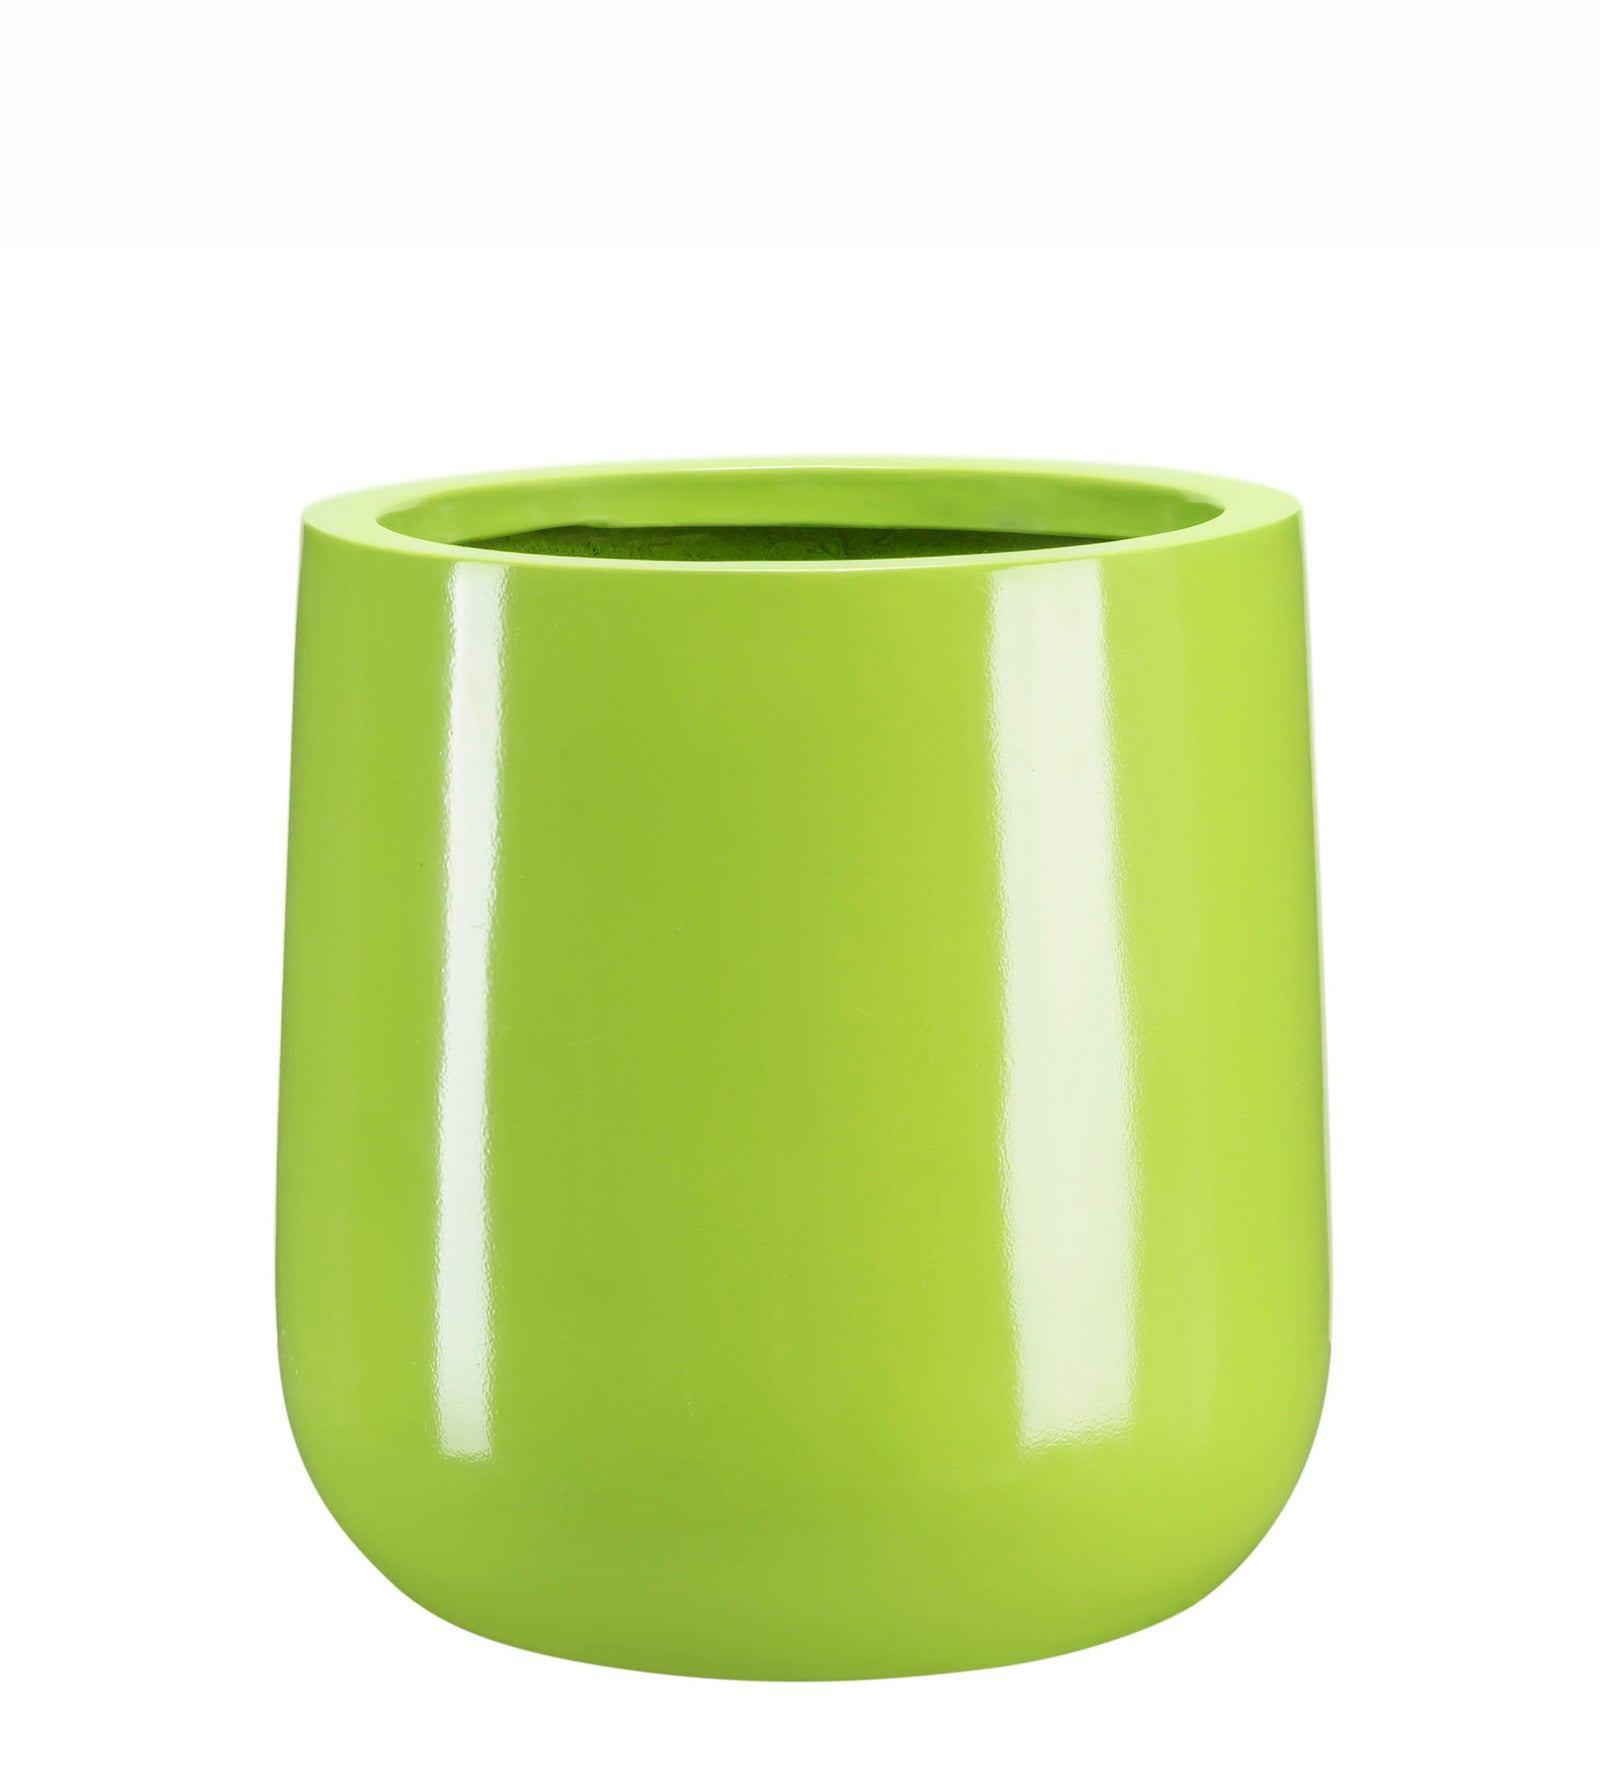 Ainslie Fiberglass Planter - Glossy Green - Round, Indoor and Outdoor Planter - Modern Planter - Drainage Holes